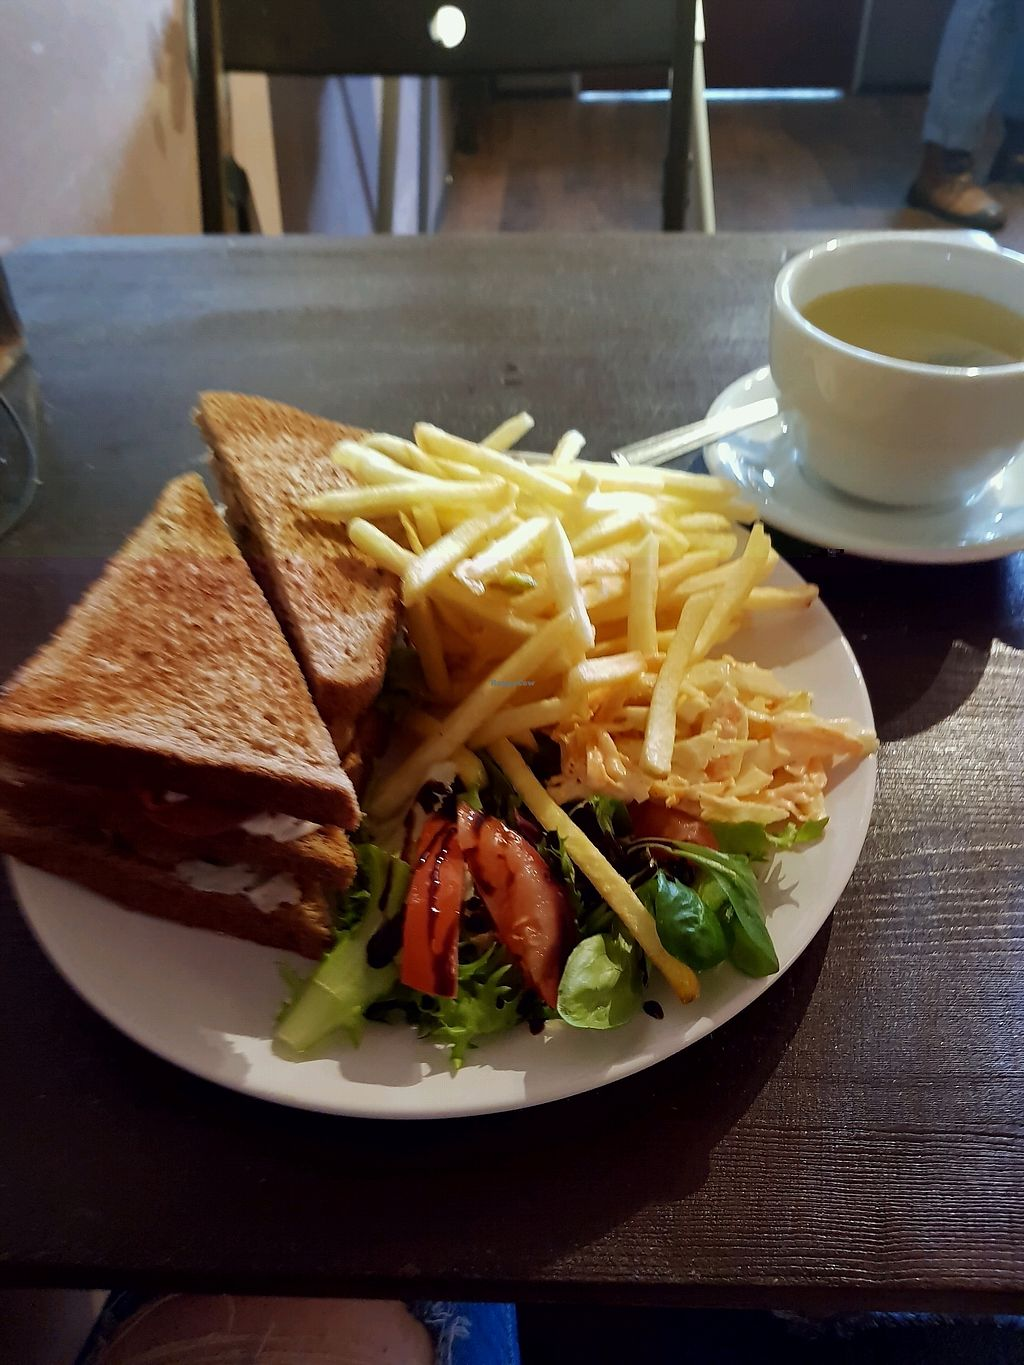 """Photo of Teatime Collective  by <a href=""""/members/profile/MoniqueNelson"""">MoniqueNelson</a> <br/>Club Sandwich,  served with fries, coleslaw and a salad <br/> November 10, 2017  - <a href='/contact/abuse/image/41717/323856'>Report</a>"""